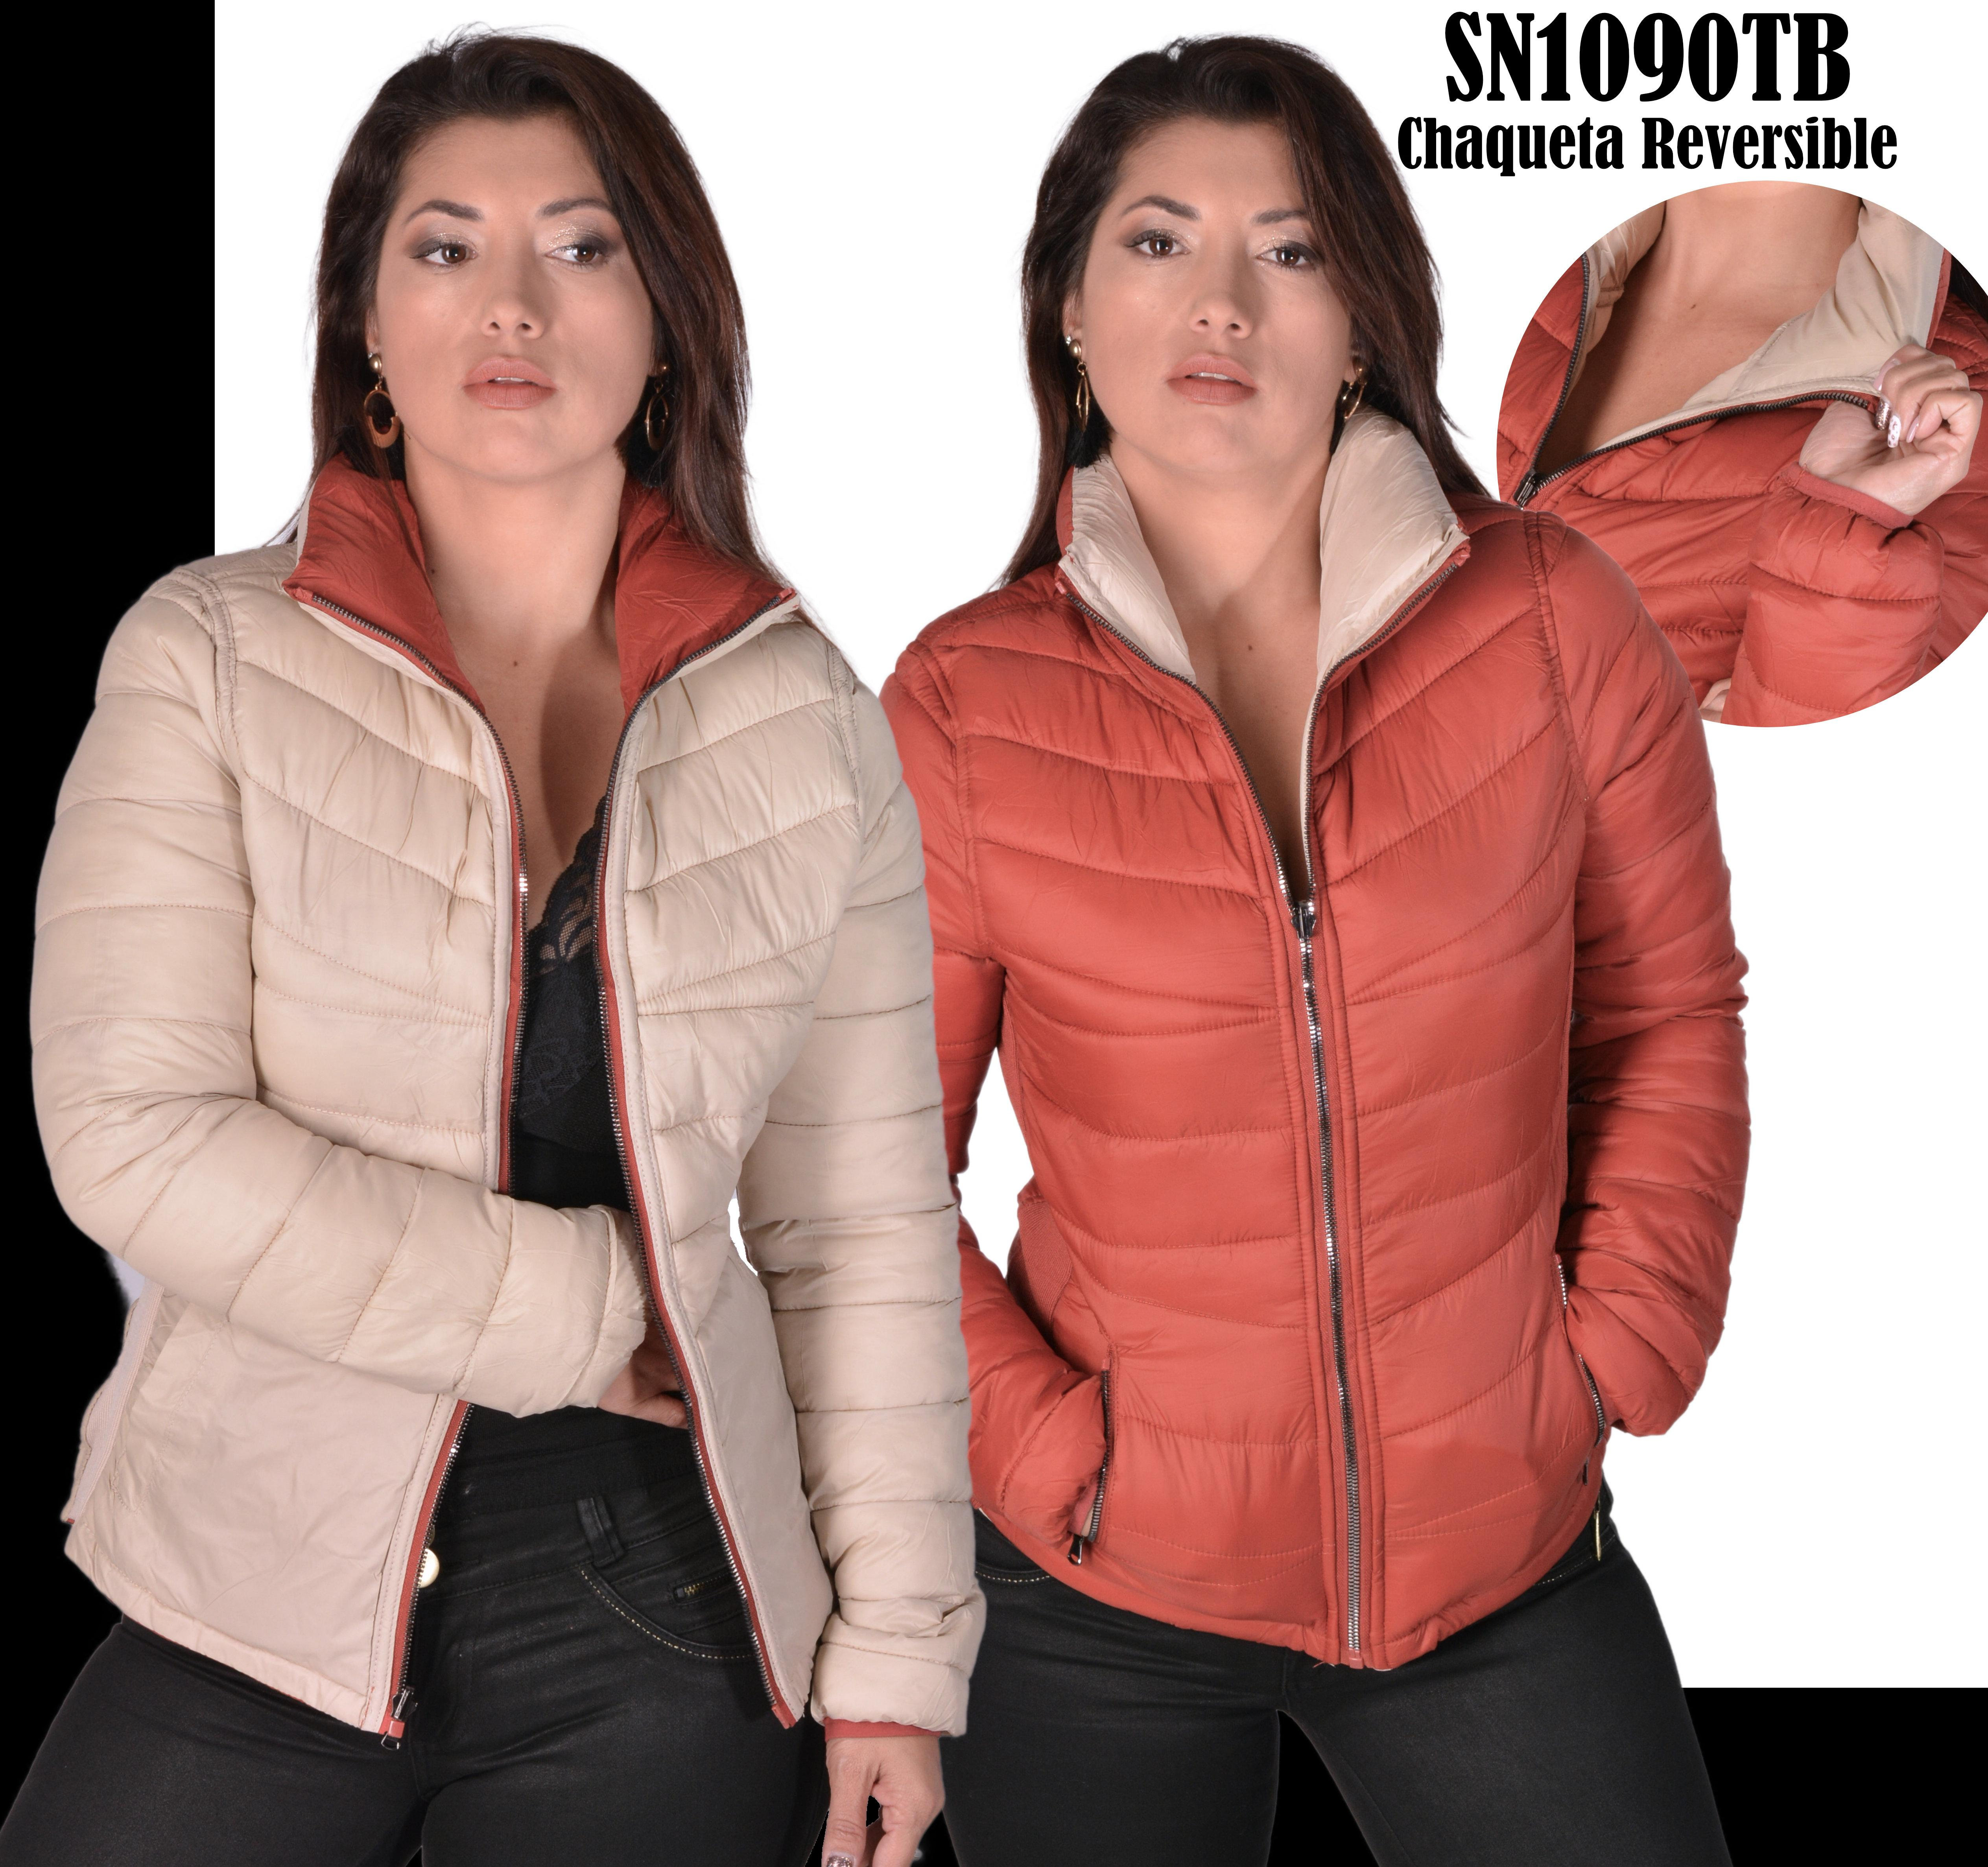 Two Color Reversible jacket with high collar super warm